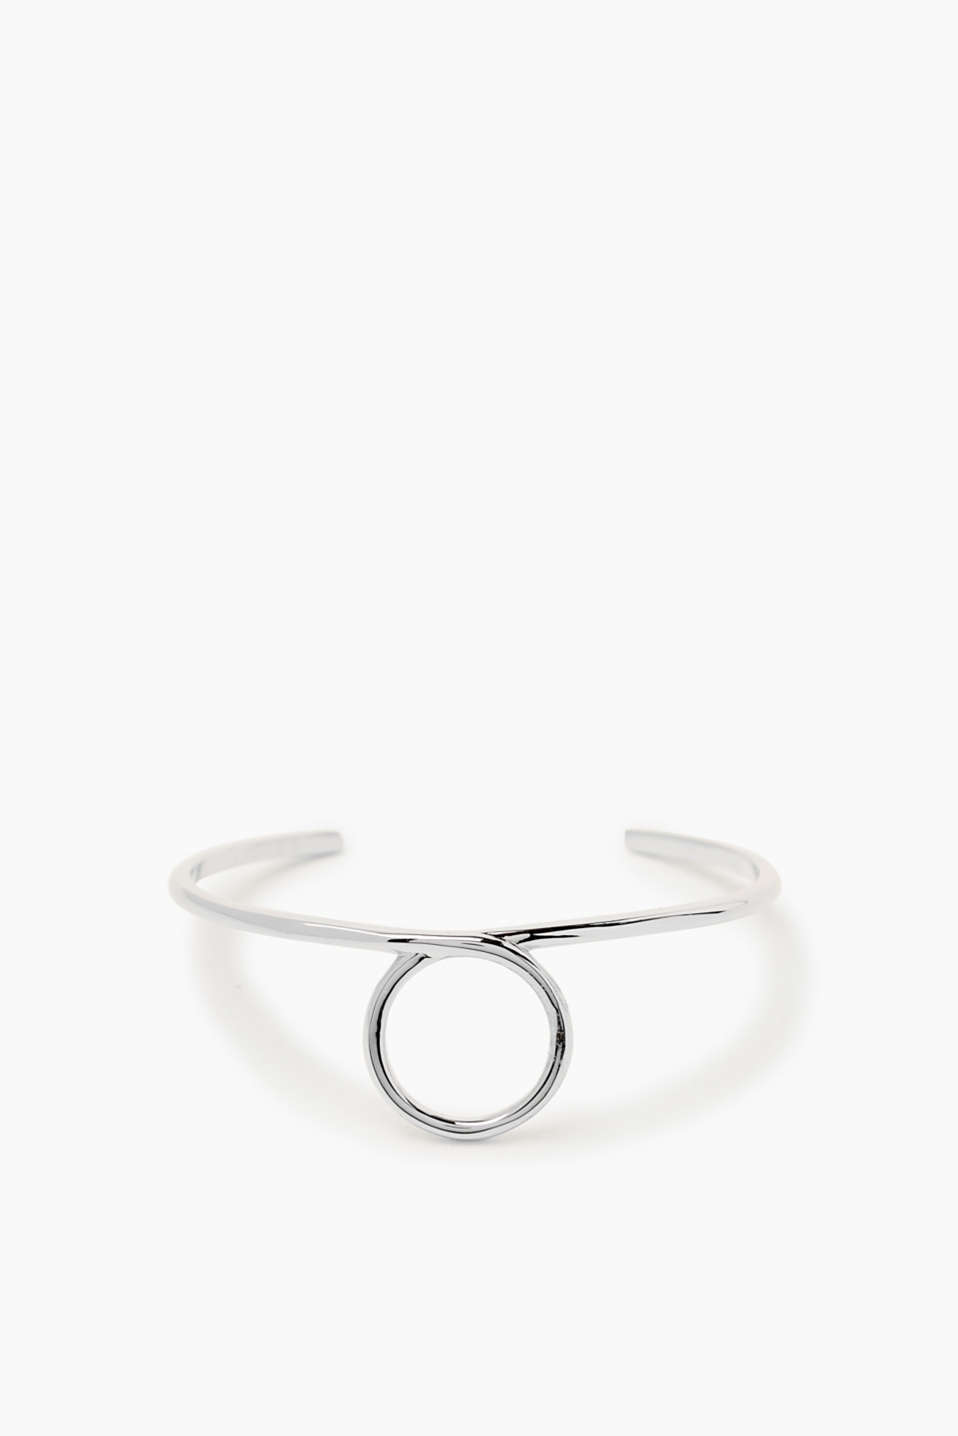 Esprit - Open bangle made of stainless steel